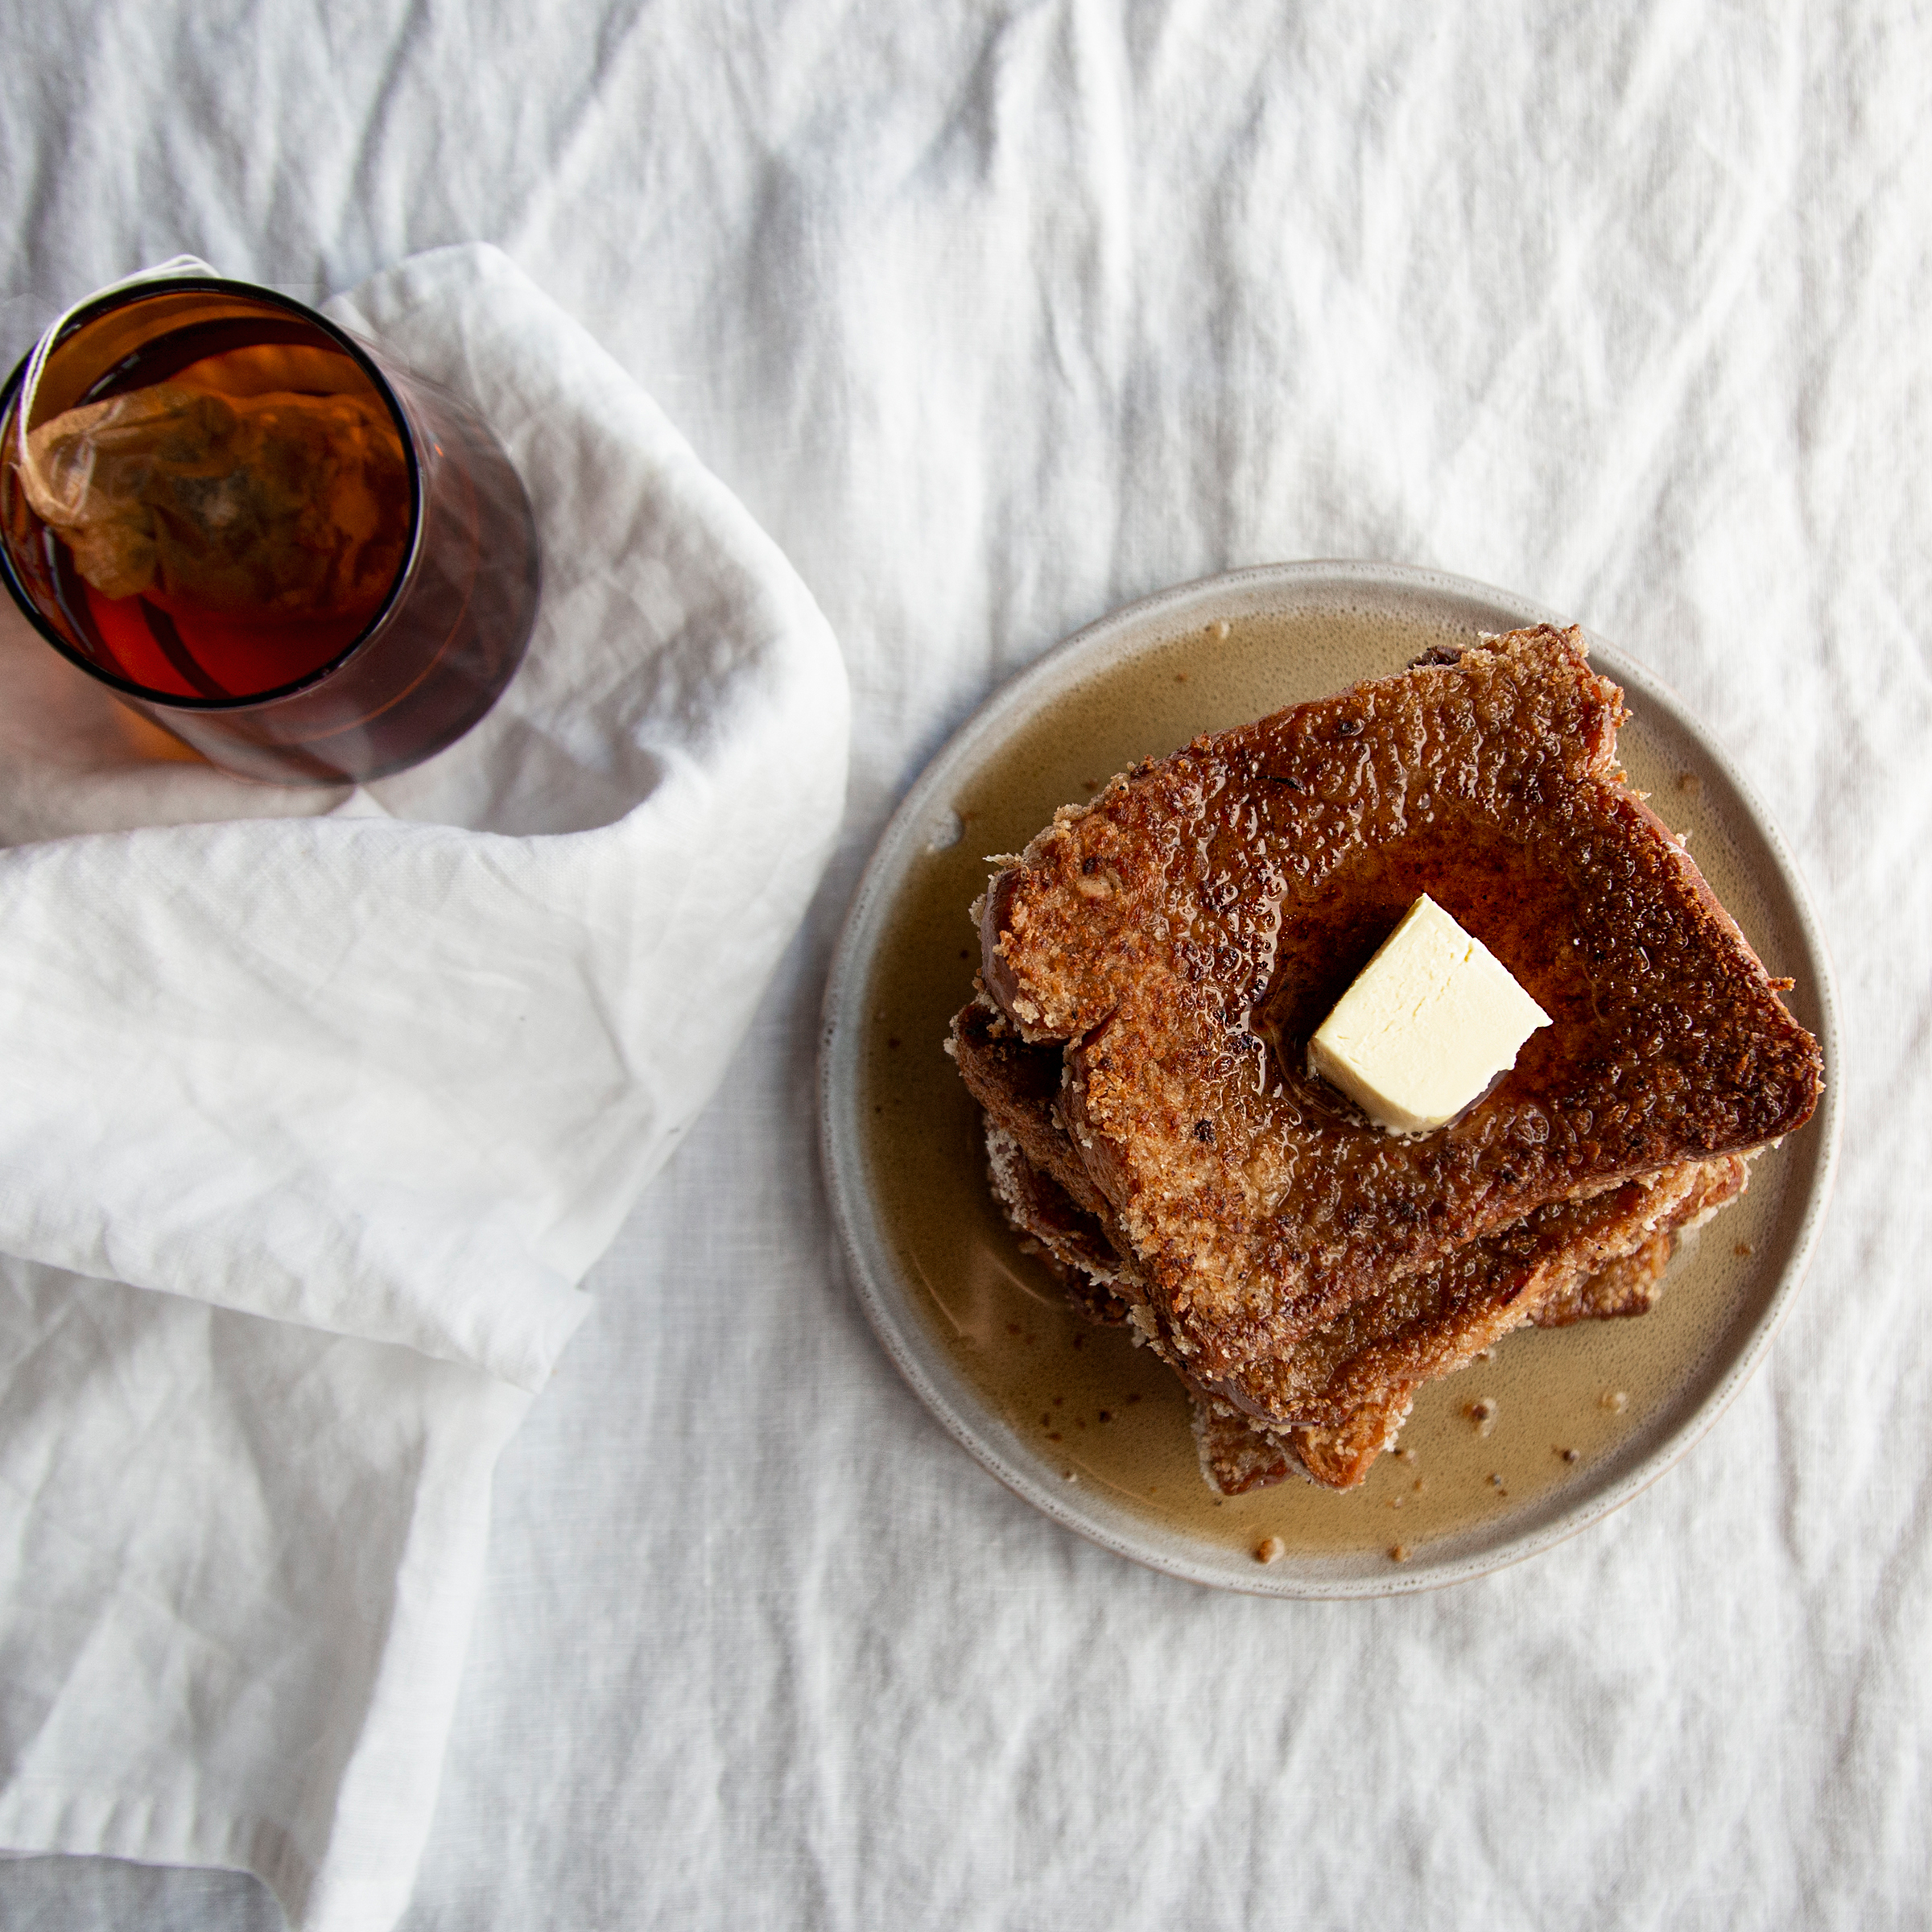 French toast on a brown plate placed on a white cloth.